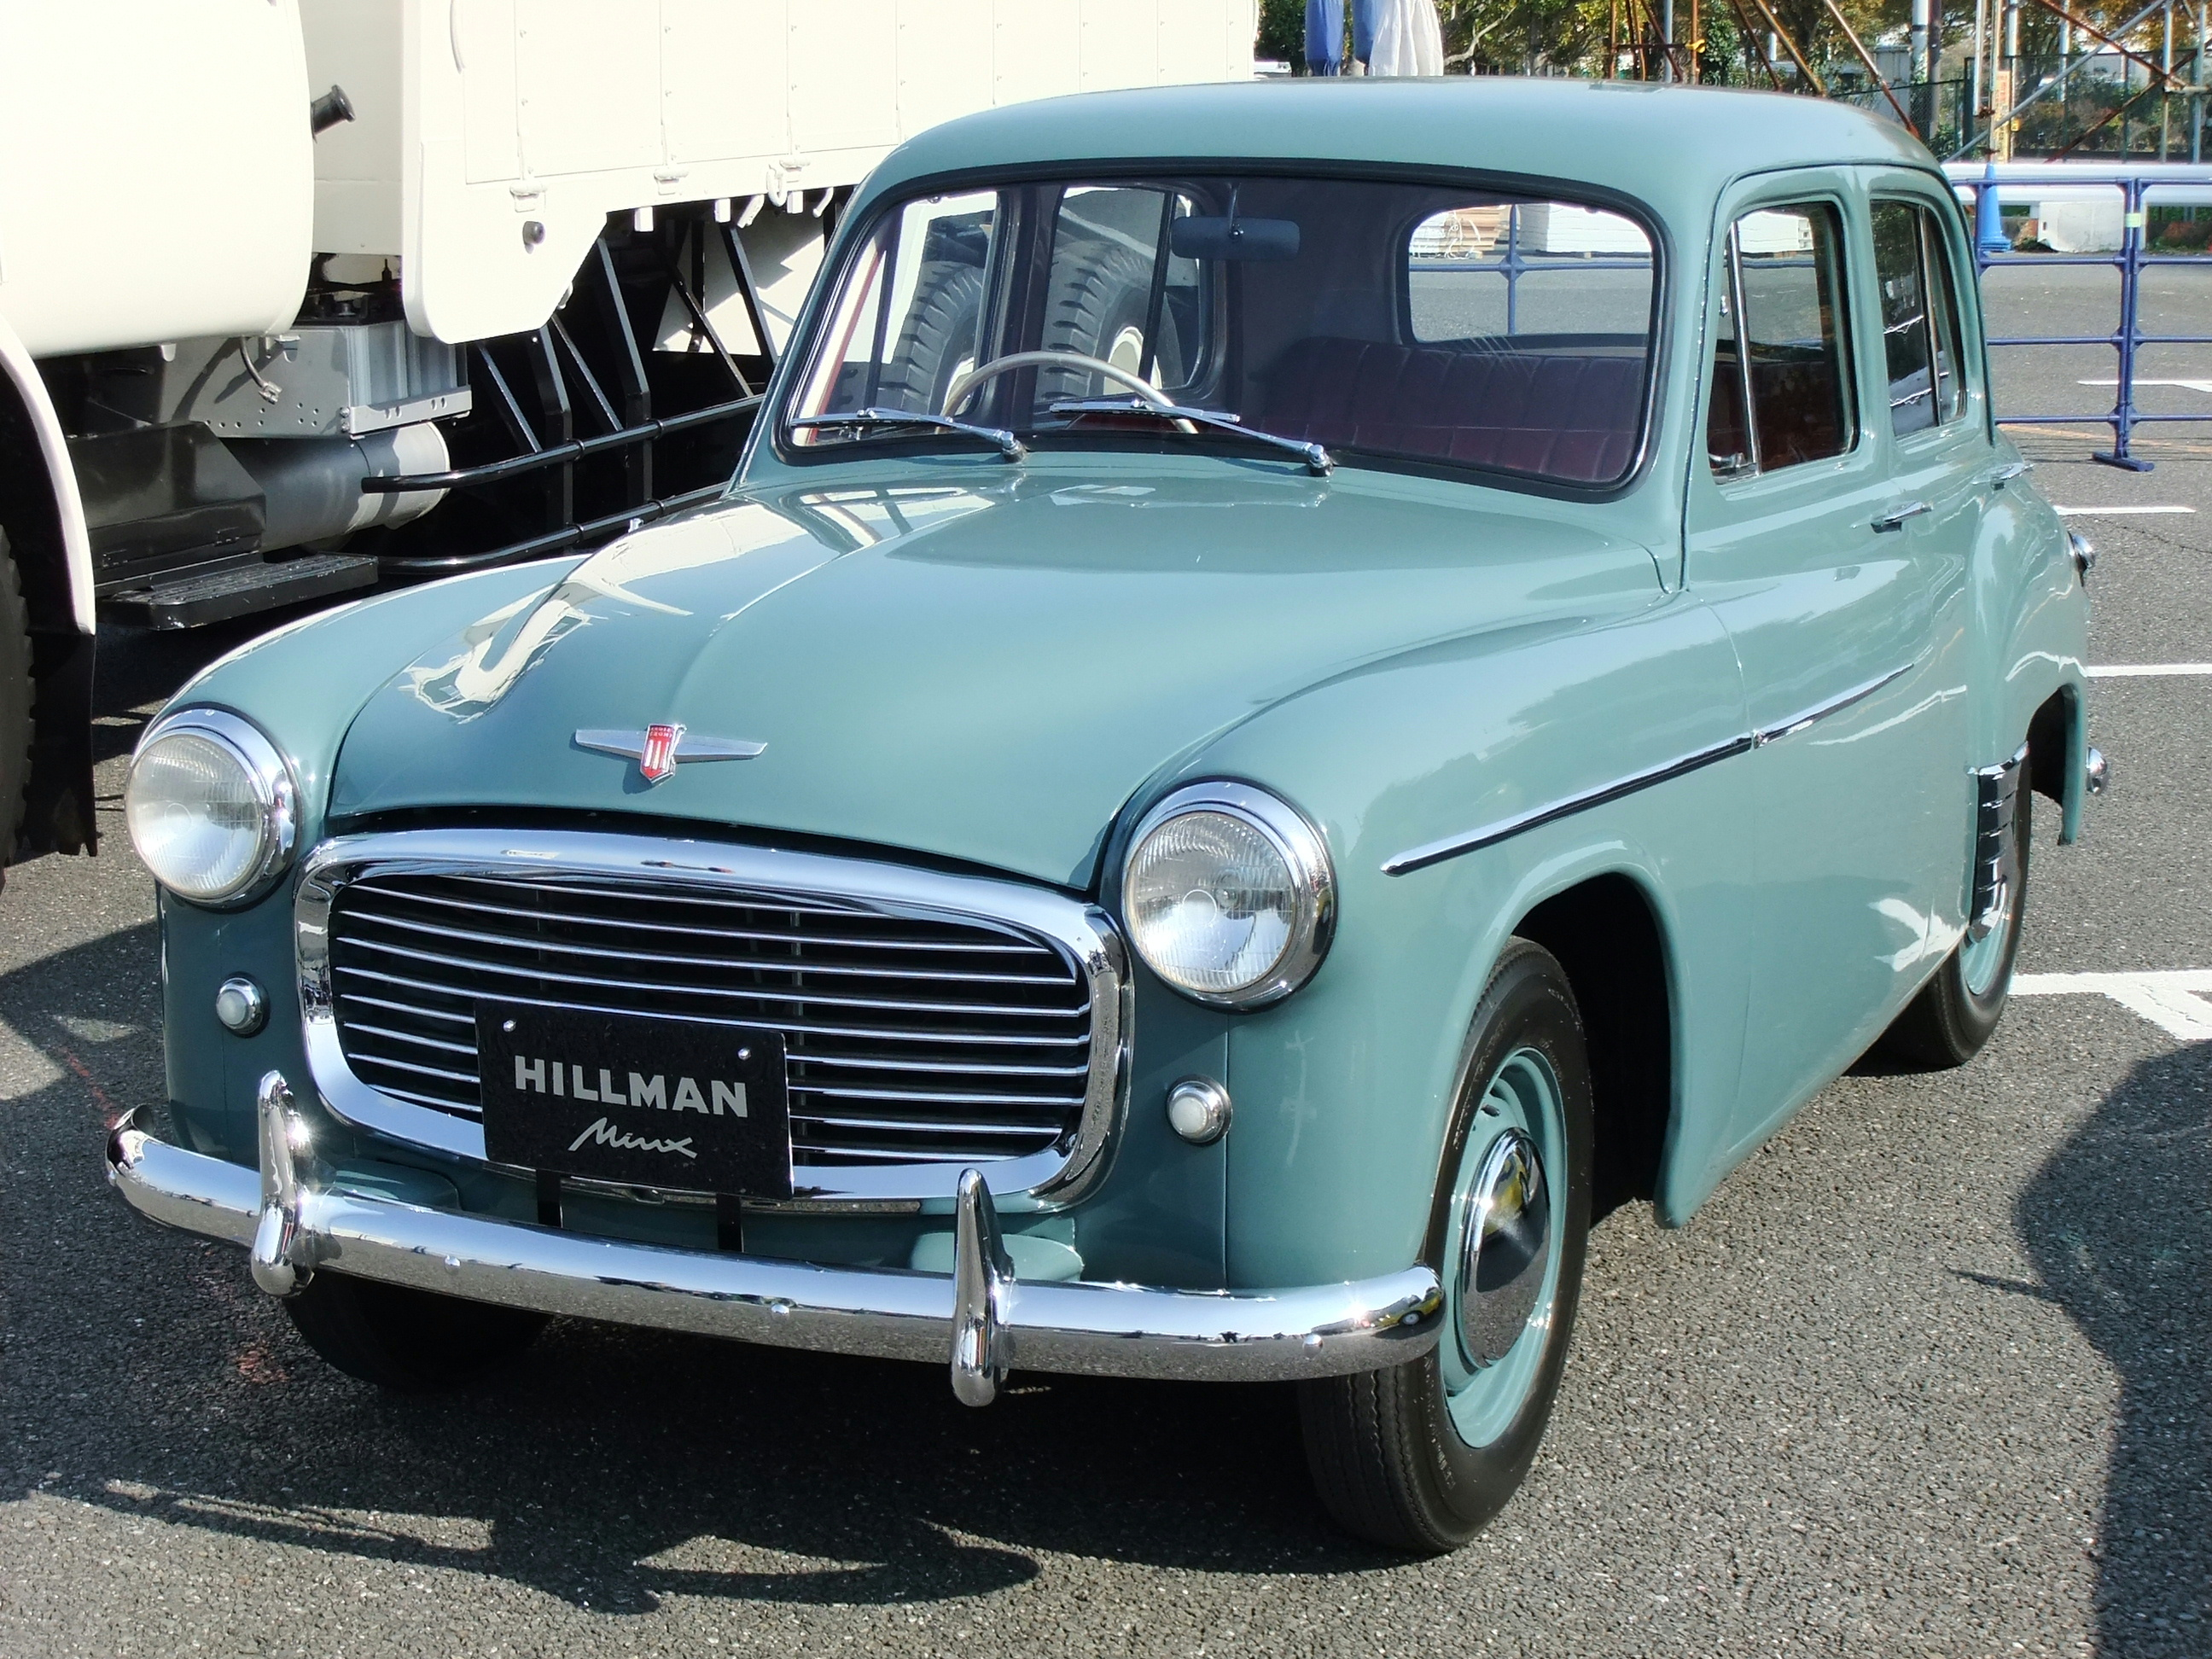 Isuzu hillman photo - 3